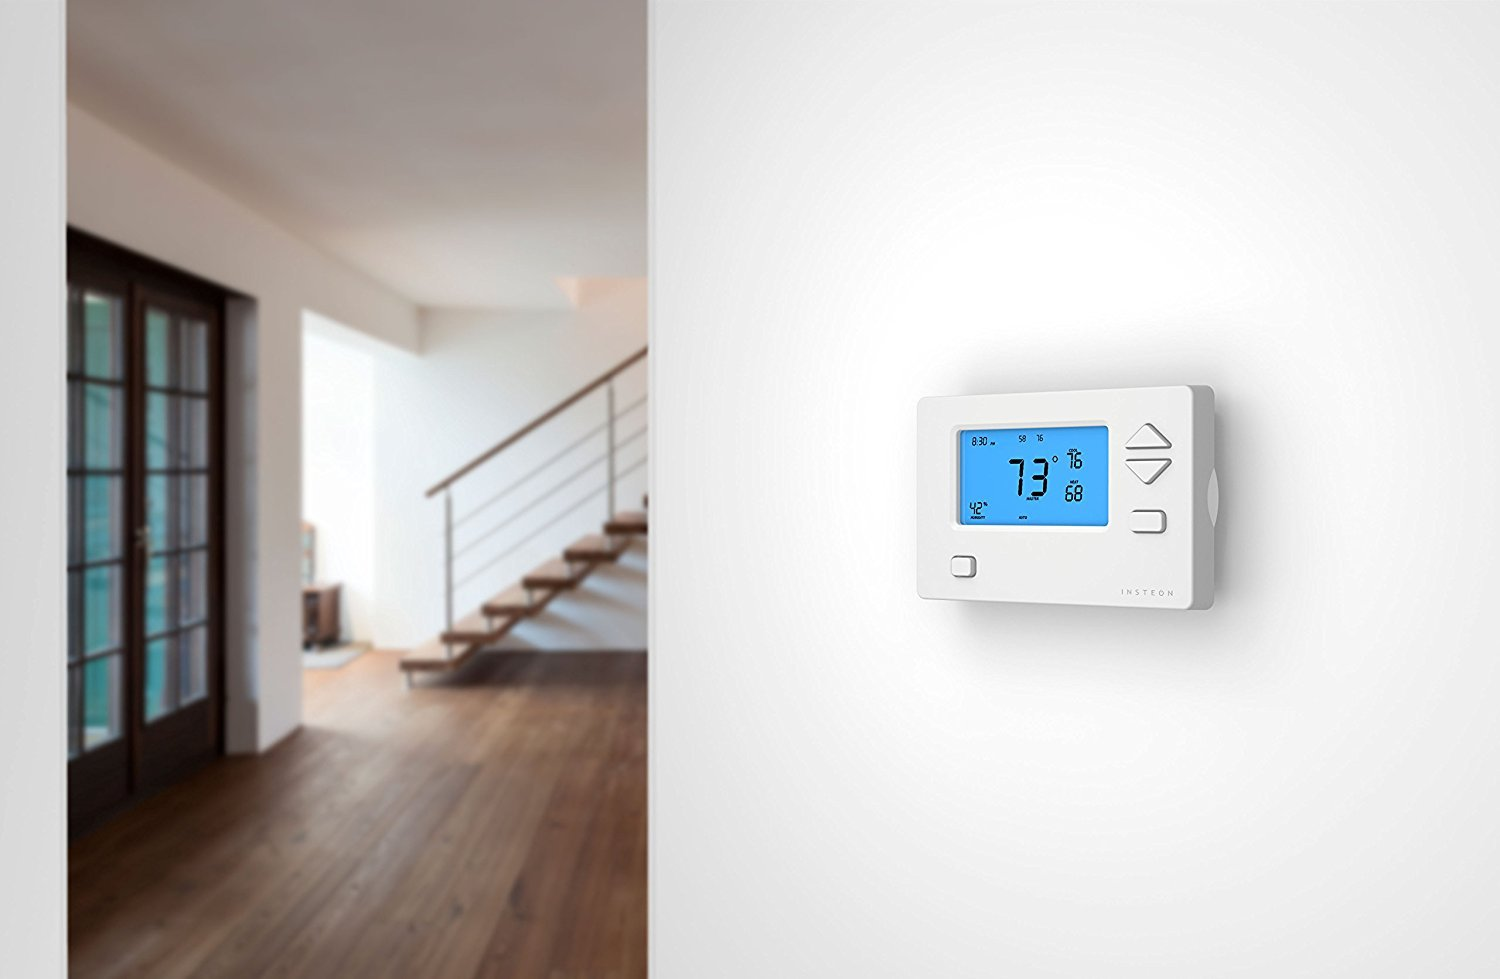 Prime Day surprise: Get an Alexa and Google enabled smart thermostat for only $46!